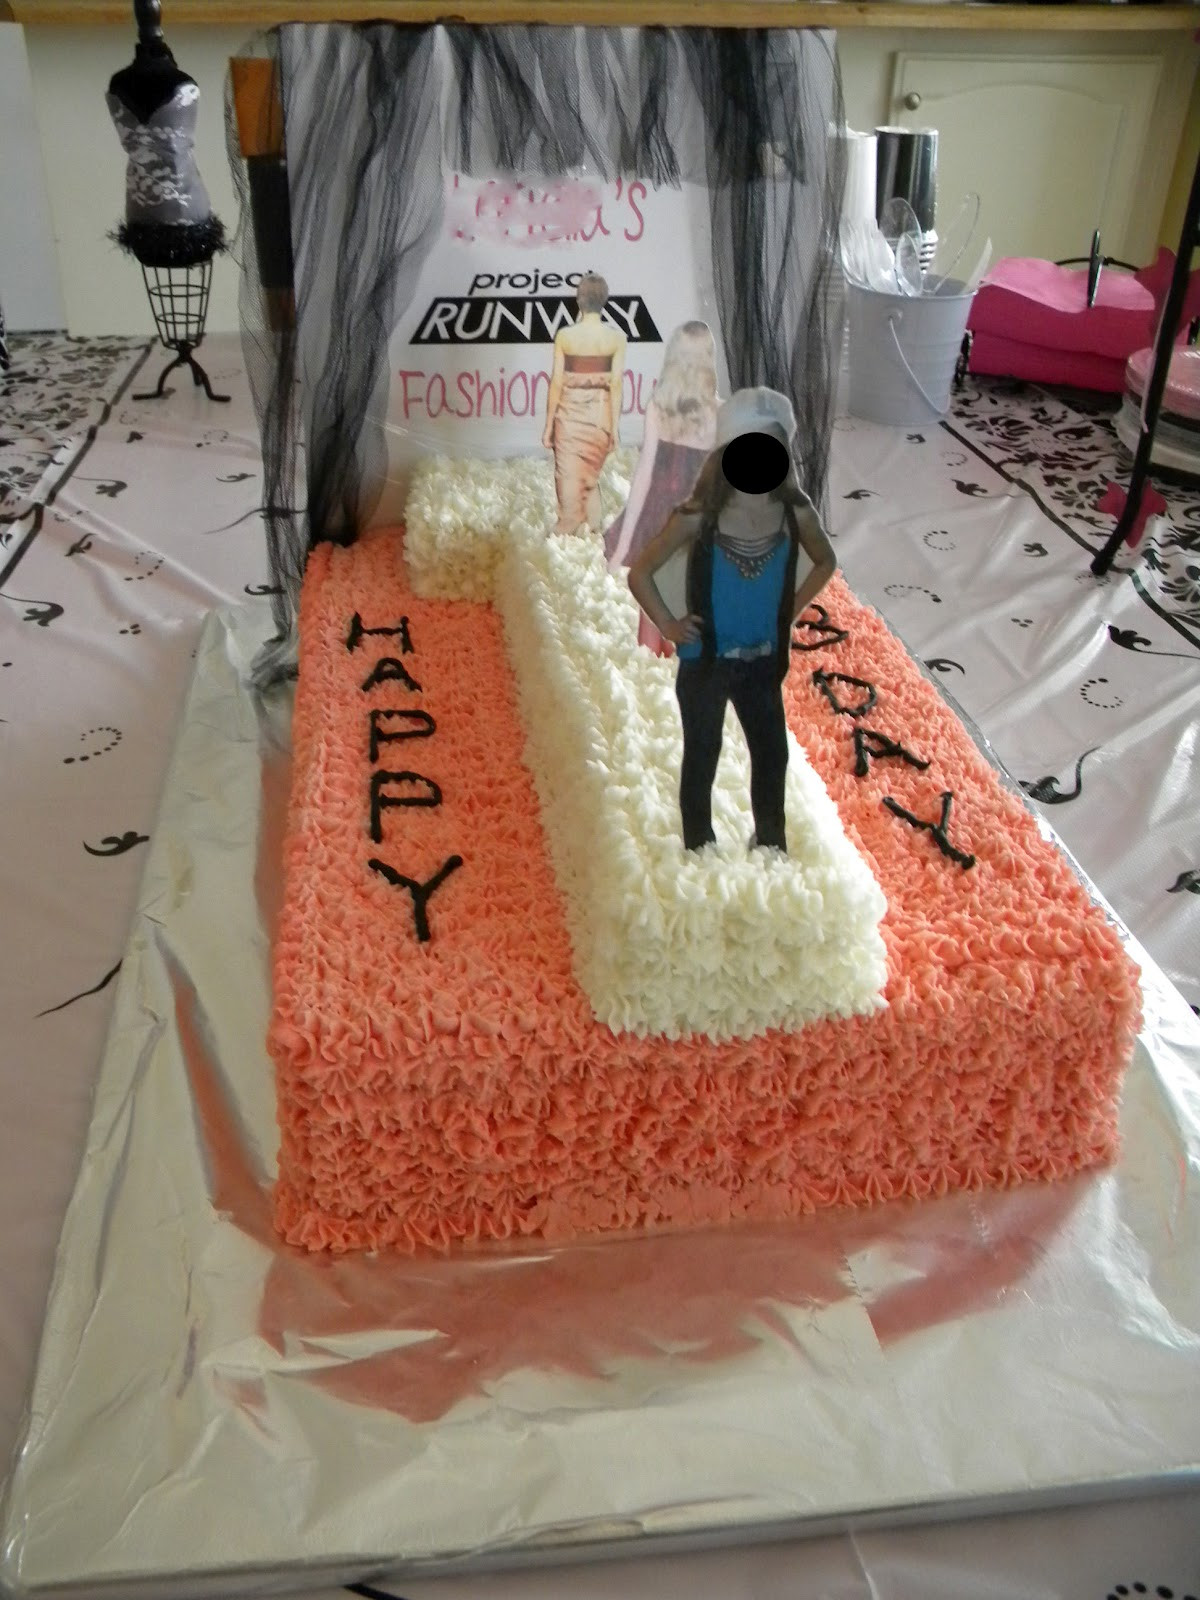 Best ideas about Birthday Party Project . Save or Pin Just A Frugal Mom Project Runway Birthday Party Now.